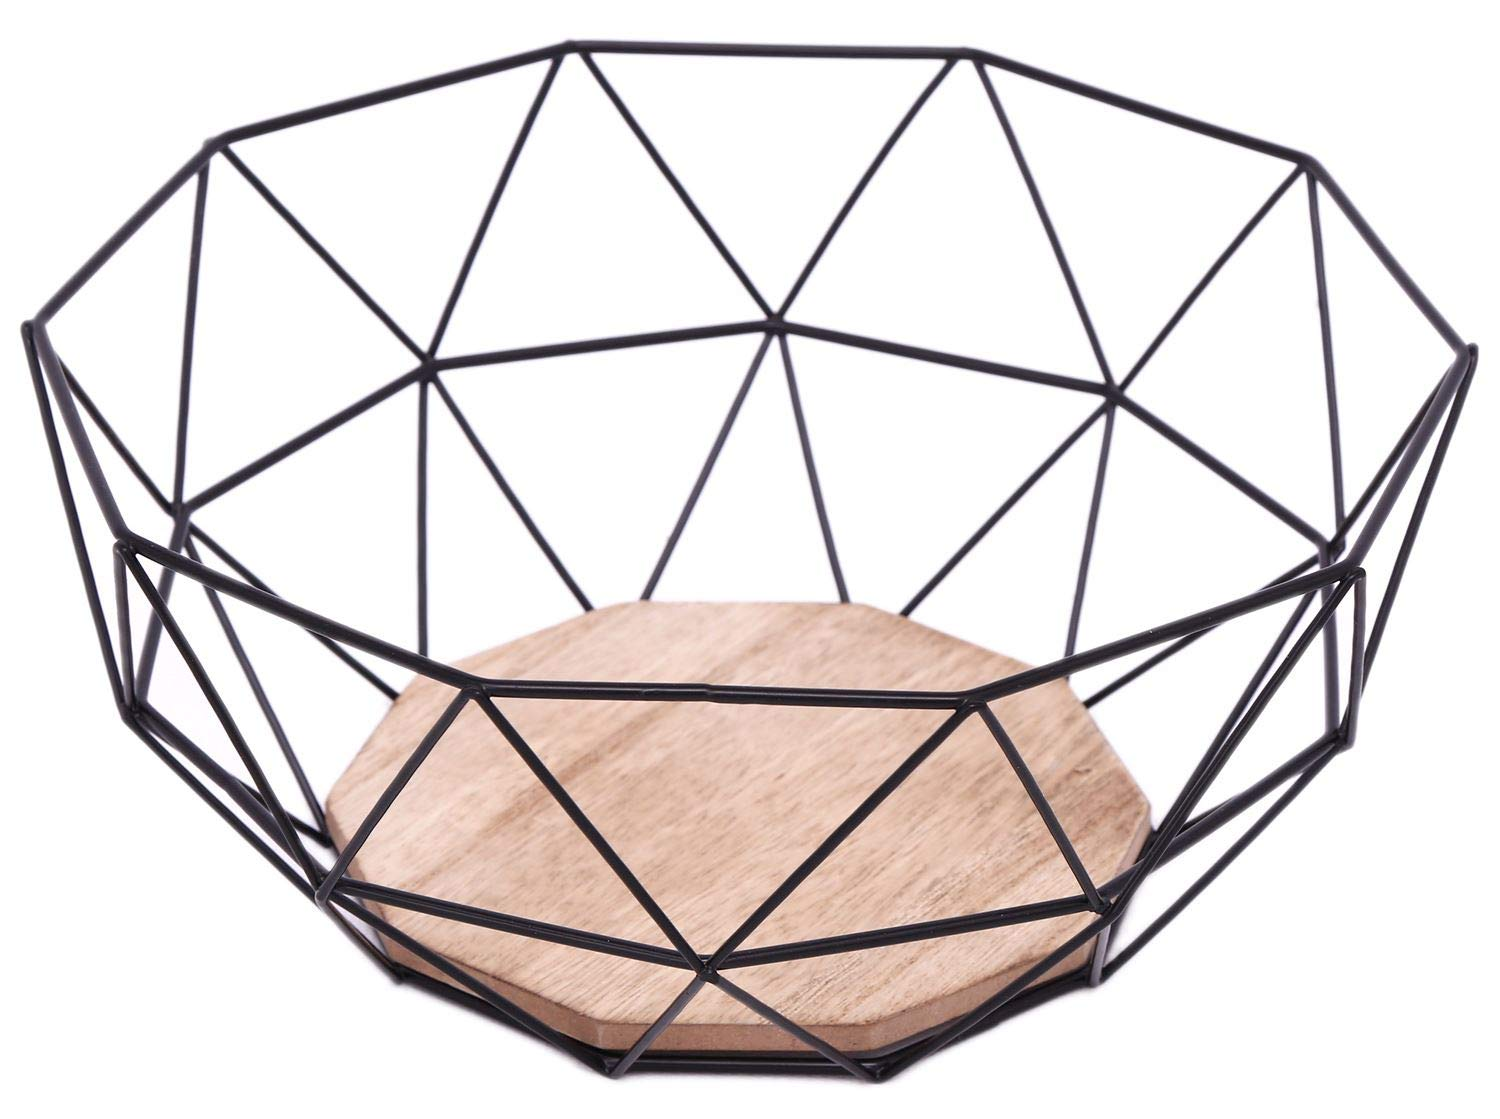 Black Geometric Metal Wire Wooden Base Decorative Storage/ Display Basket Fruit Bowl Carousel Home and Gifts